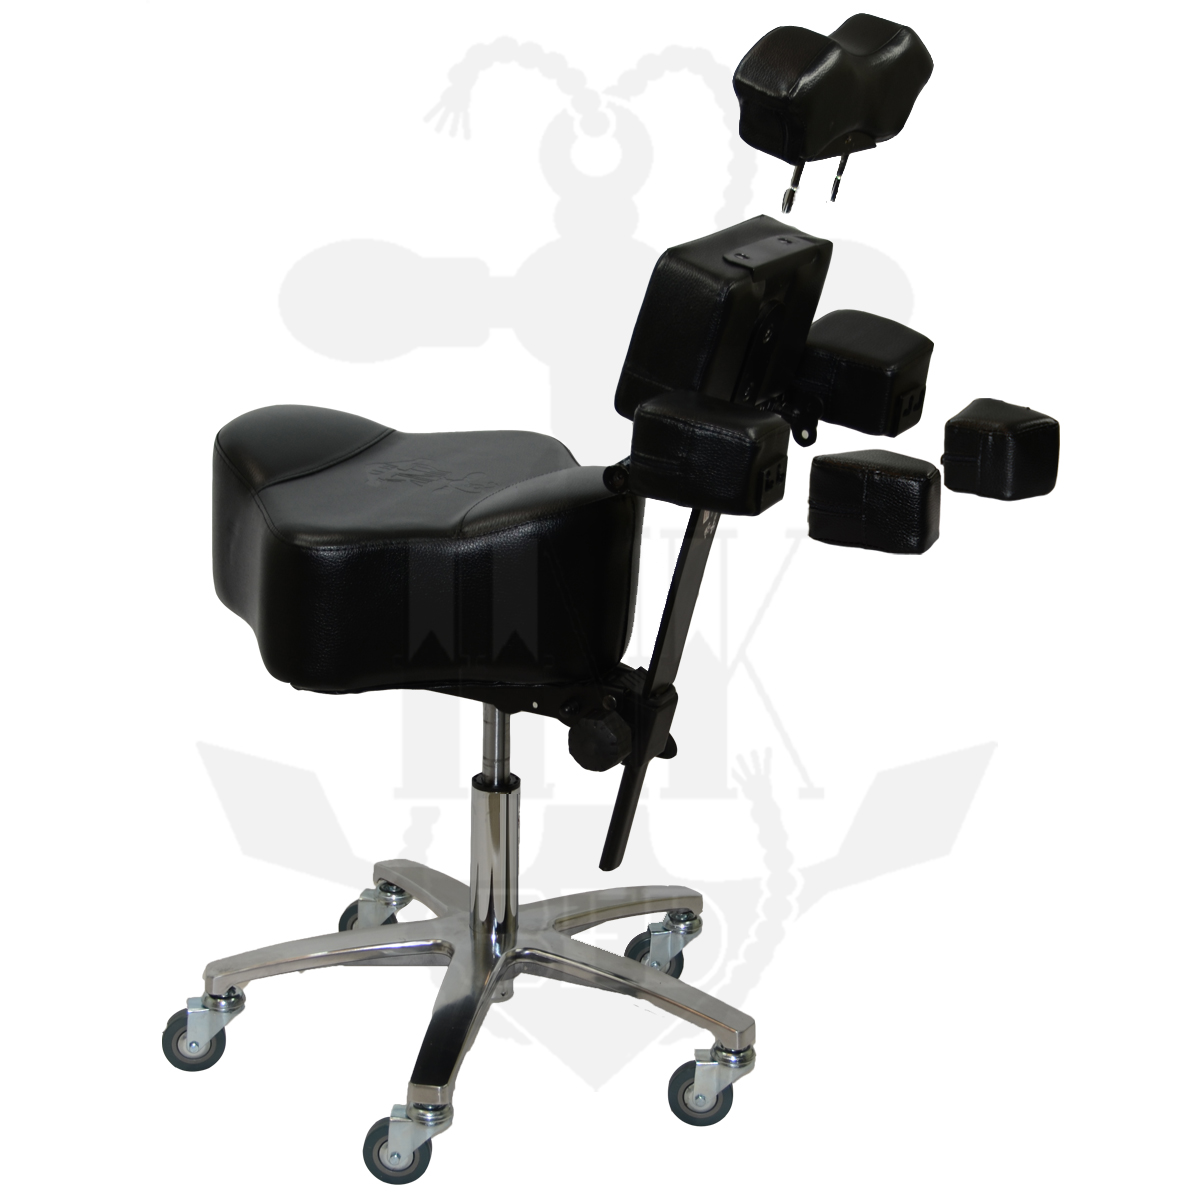 The Patented Revolutionary Ergonomic InkStool™  sc 1 st  InkBed & InkChair™ u0026 InkStool™ Deluxe Ergonomic Client u0026 Artist Package - InkBed